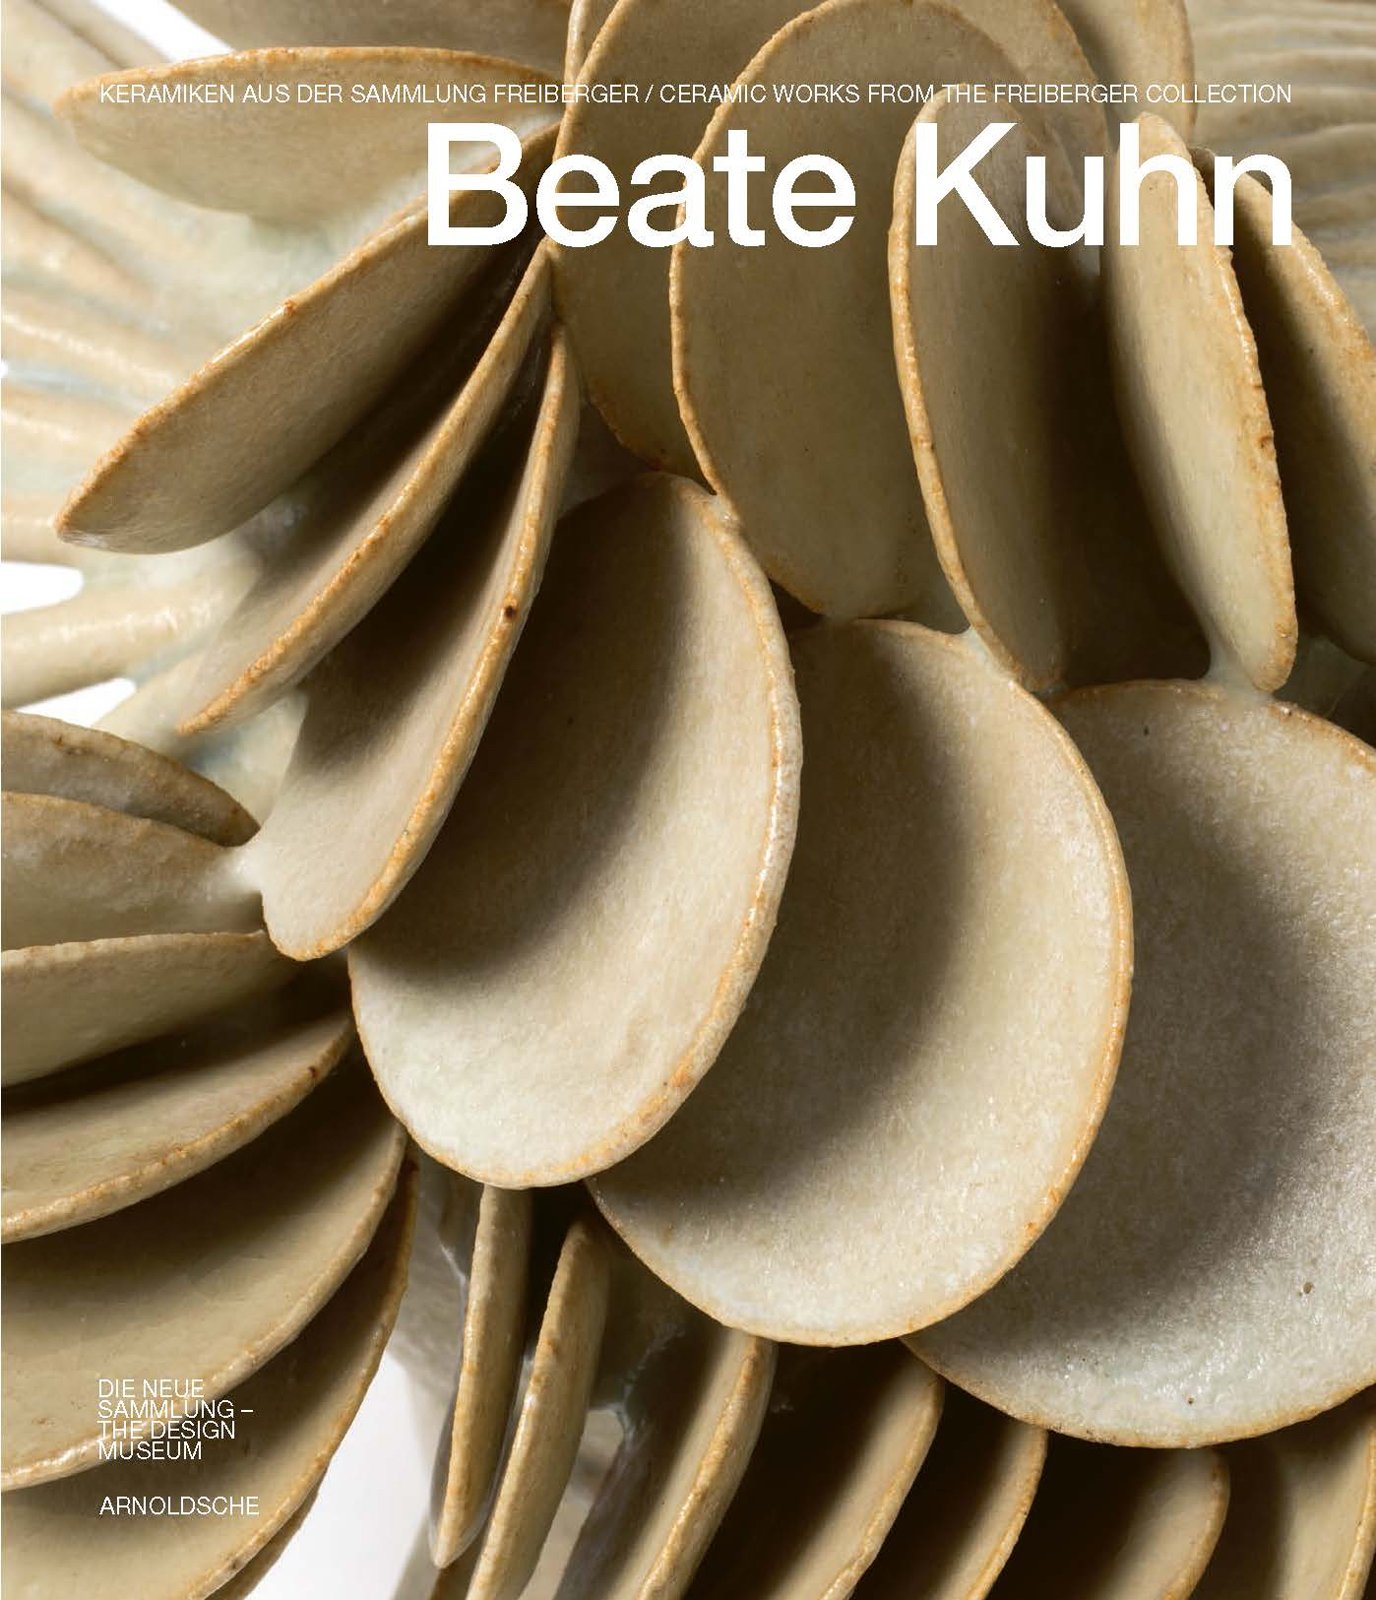 Beate Kuhn: Ceramic Works from the Freiberger Collection (English and German Edition)